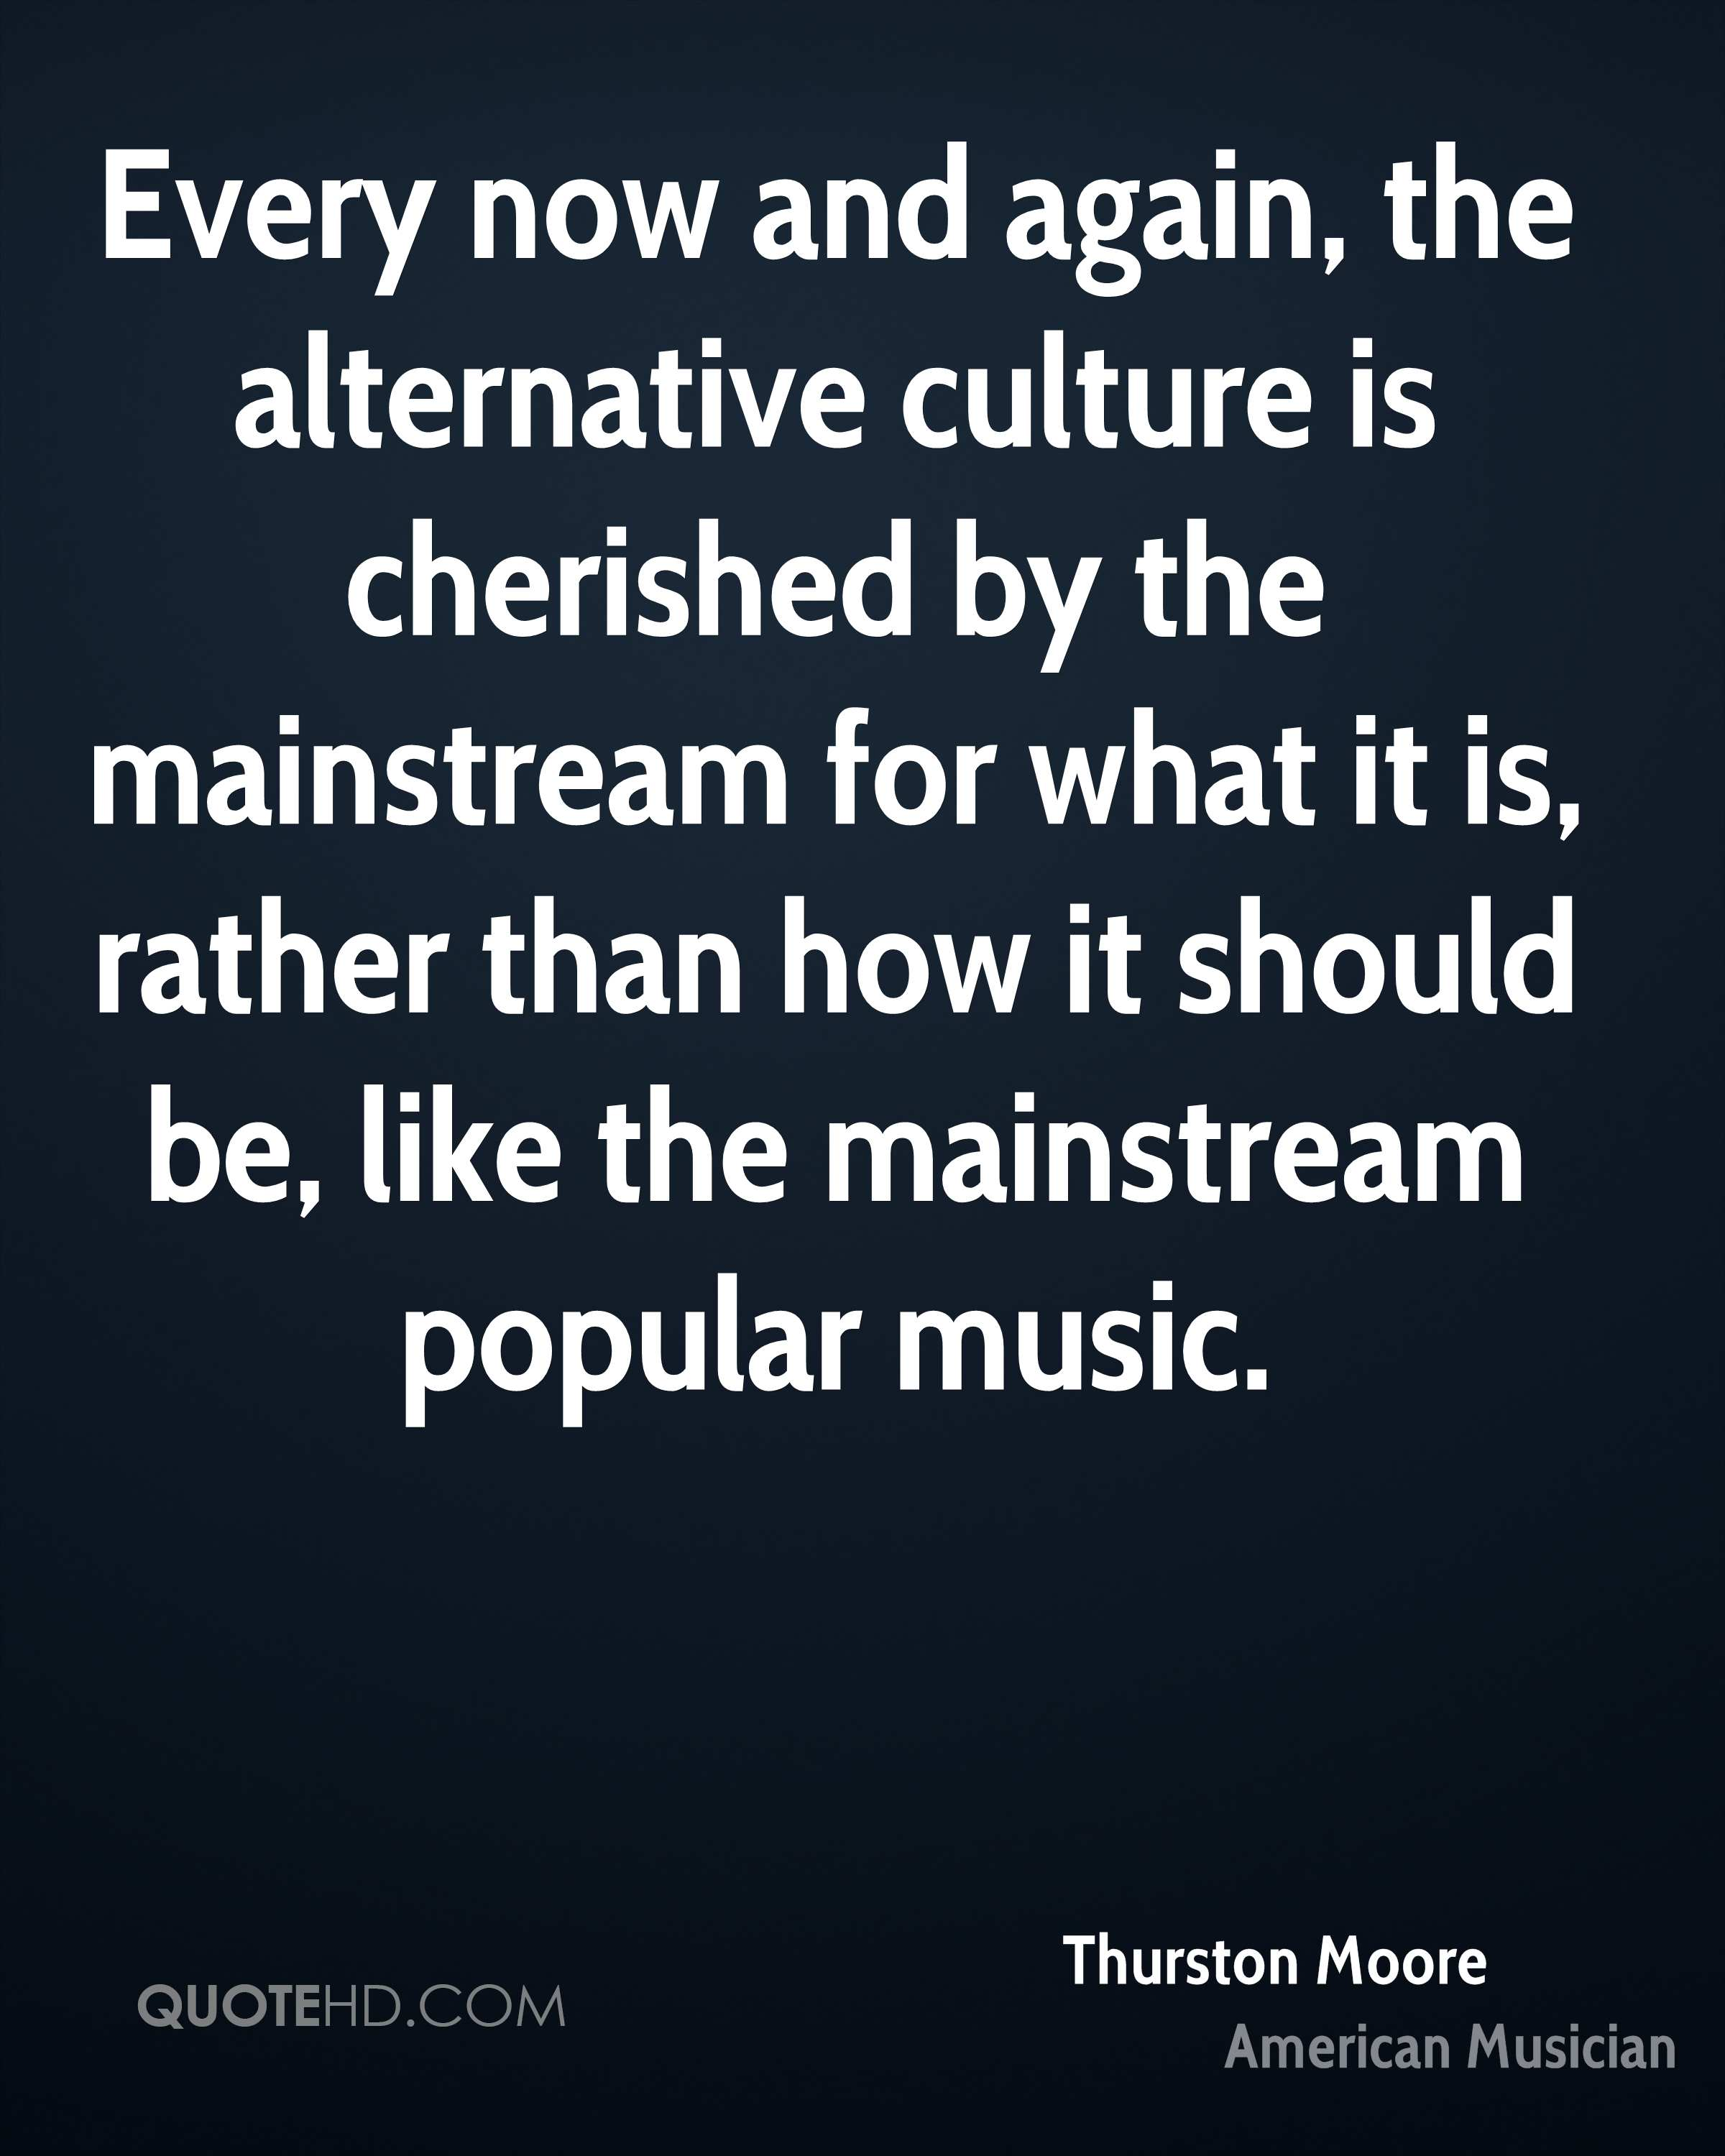 Every now and again, the alternative culture is cherished by the mainstream for what it is, rather than how it should be, like the mainstream popular music.